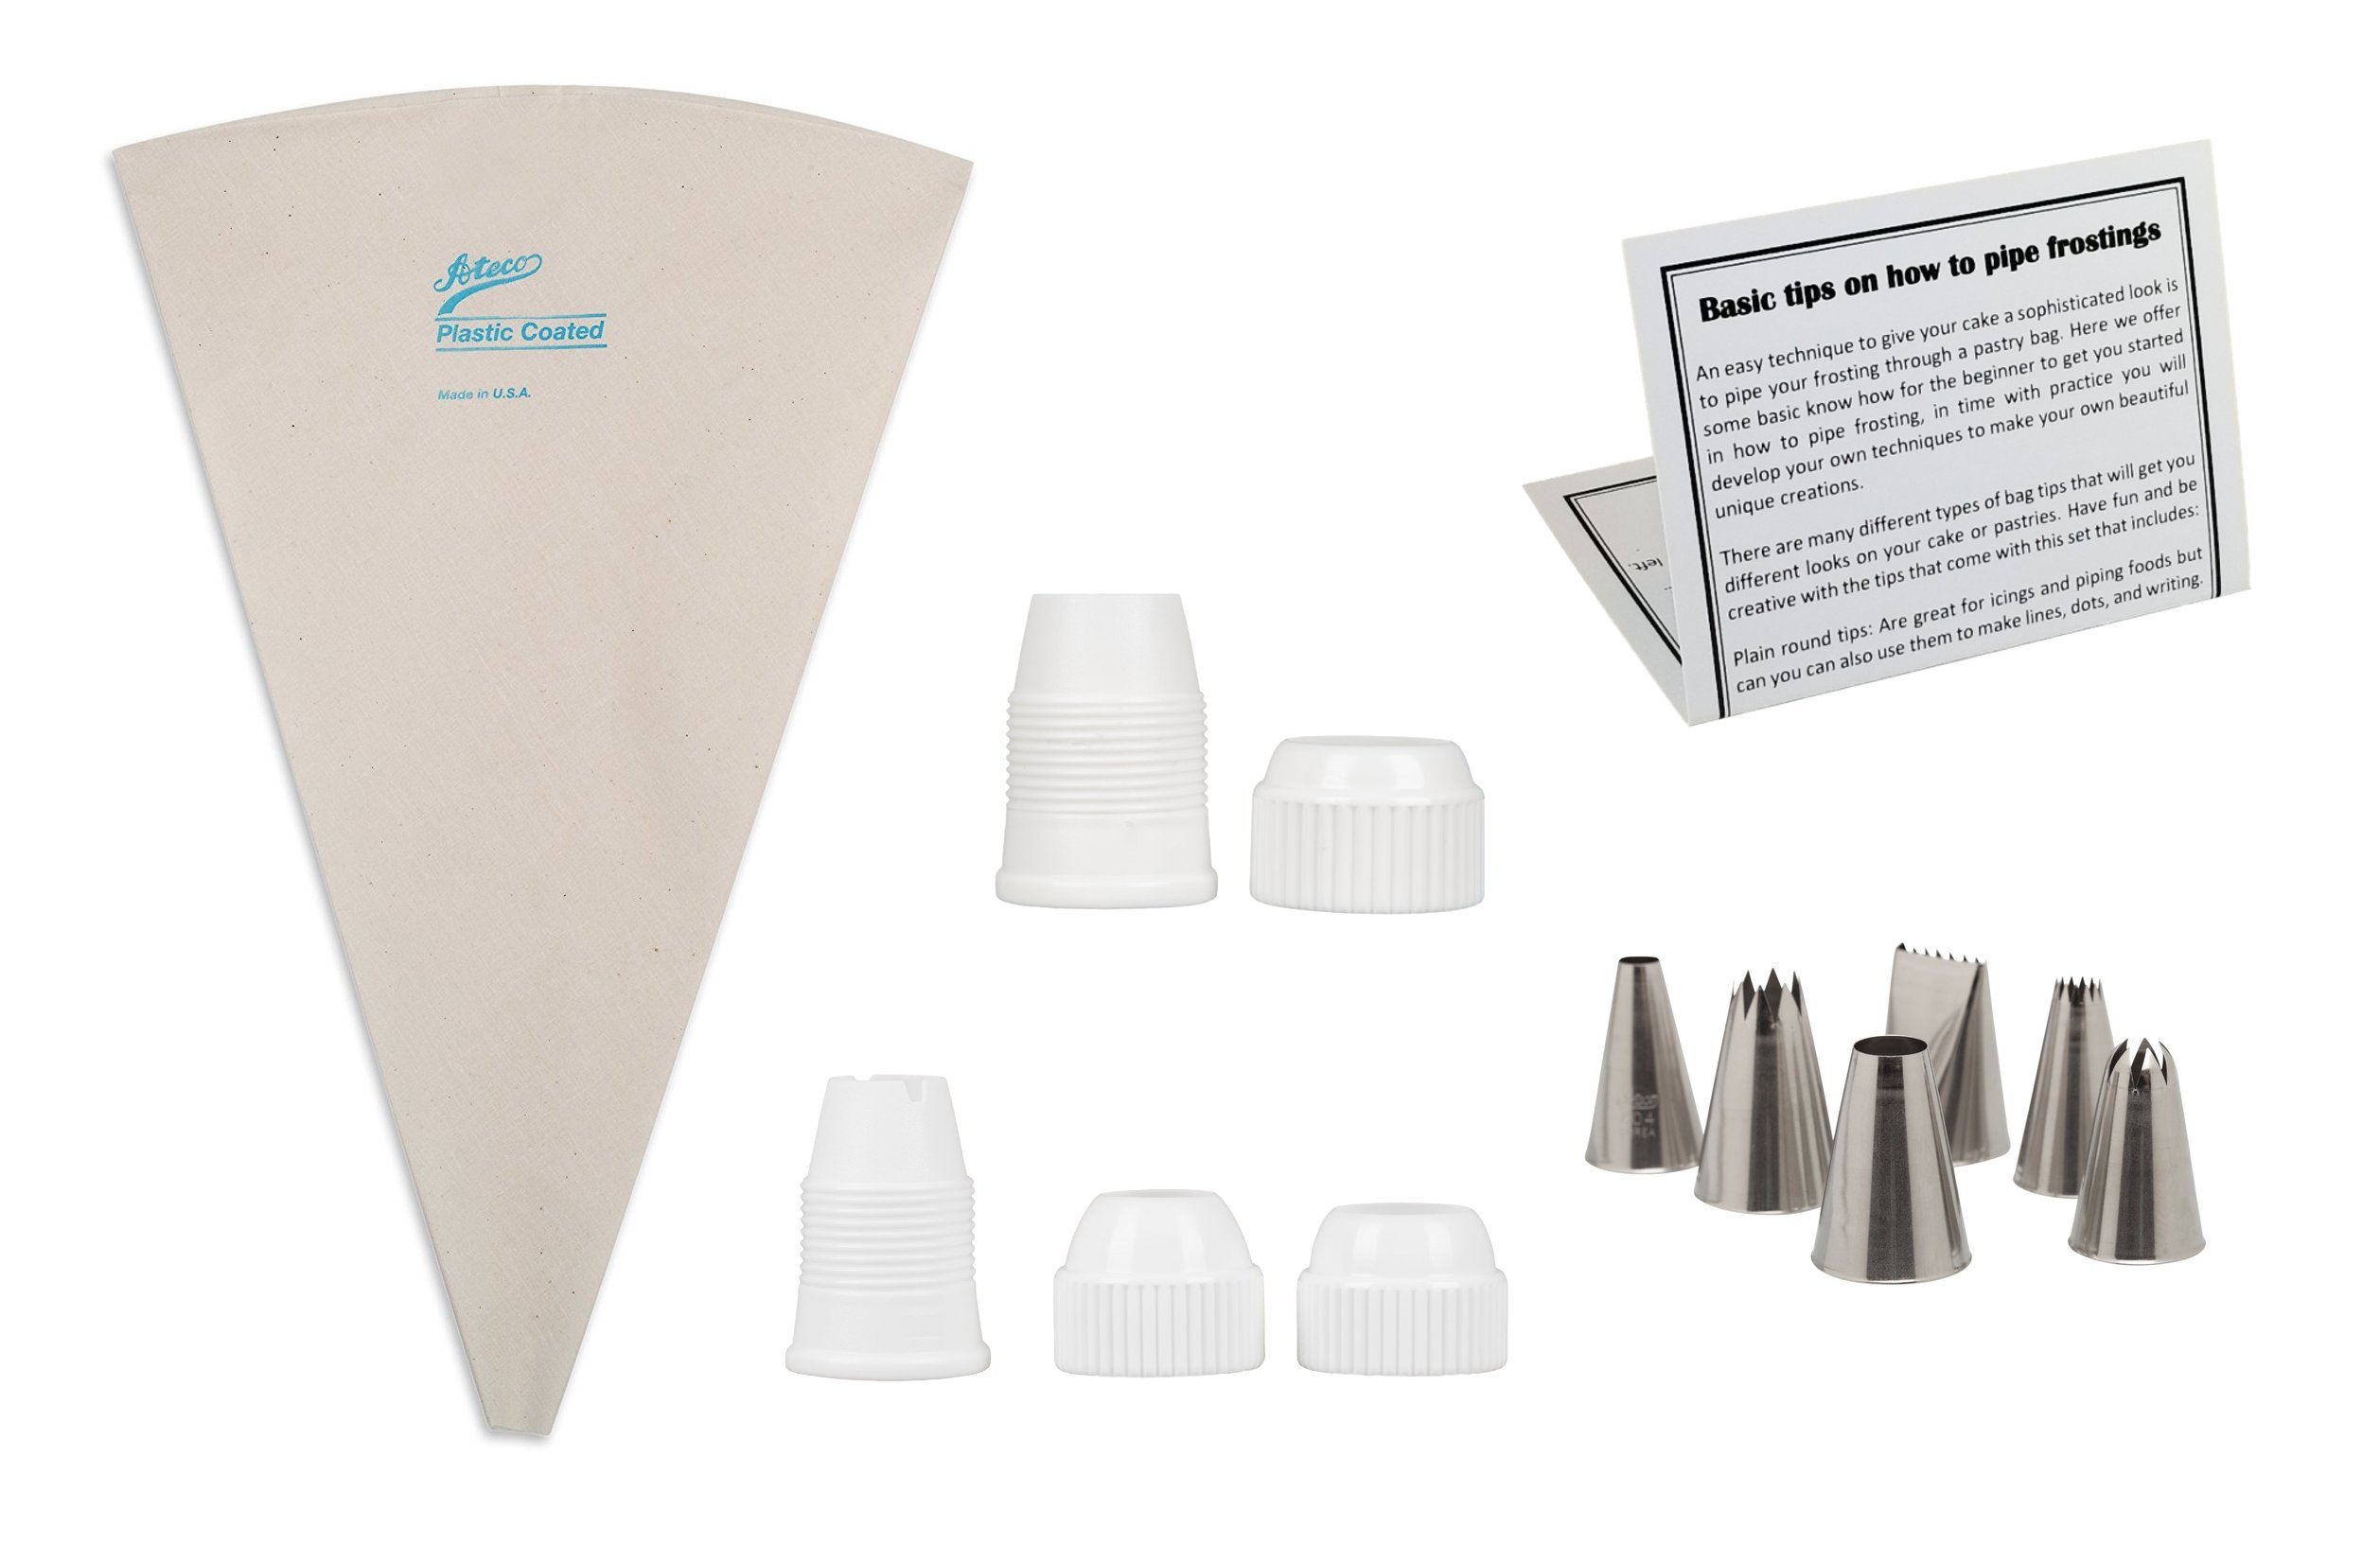 Pastry Decorating Piping Kit, Ateco Reusable 18 Inch Pastry Bag with 6 Piece Assorted Pastry Tube Tips, 1 Large and 1 Medium Coupler Cake Set with Information Card